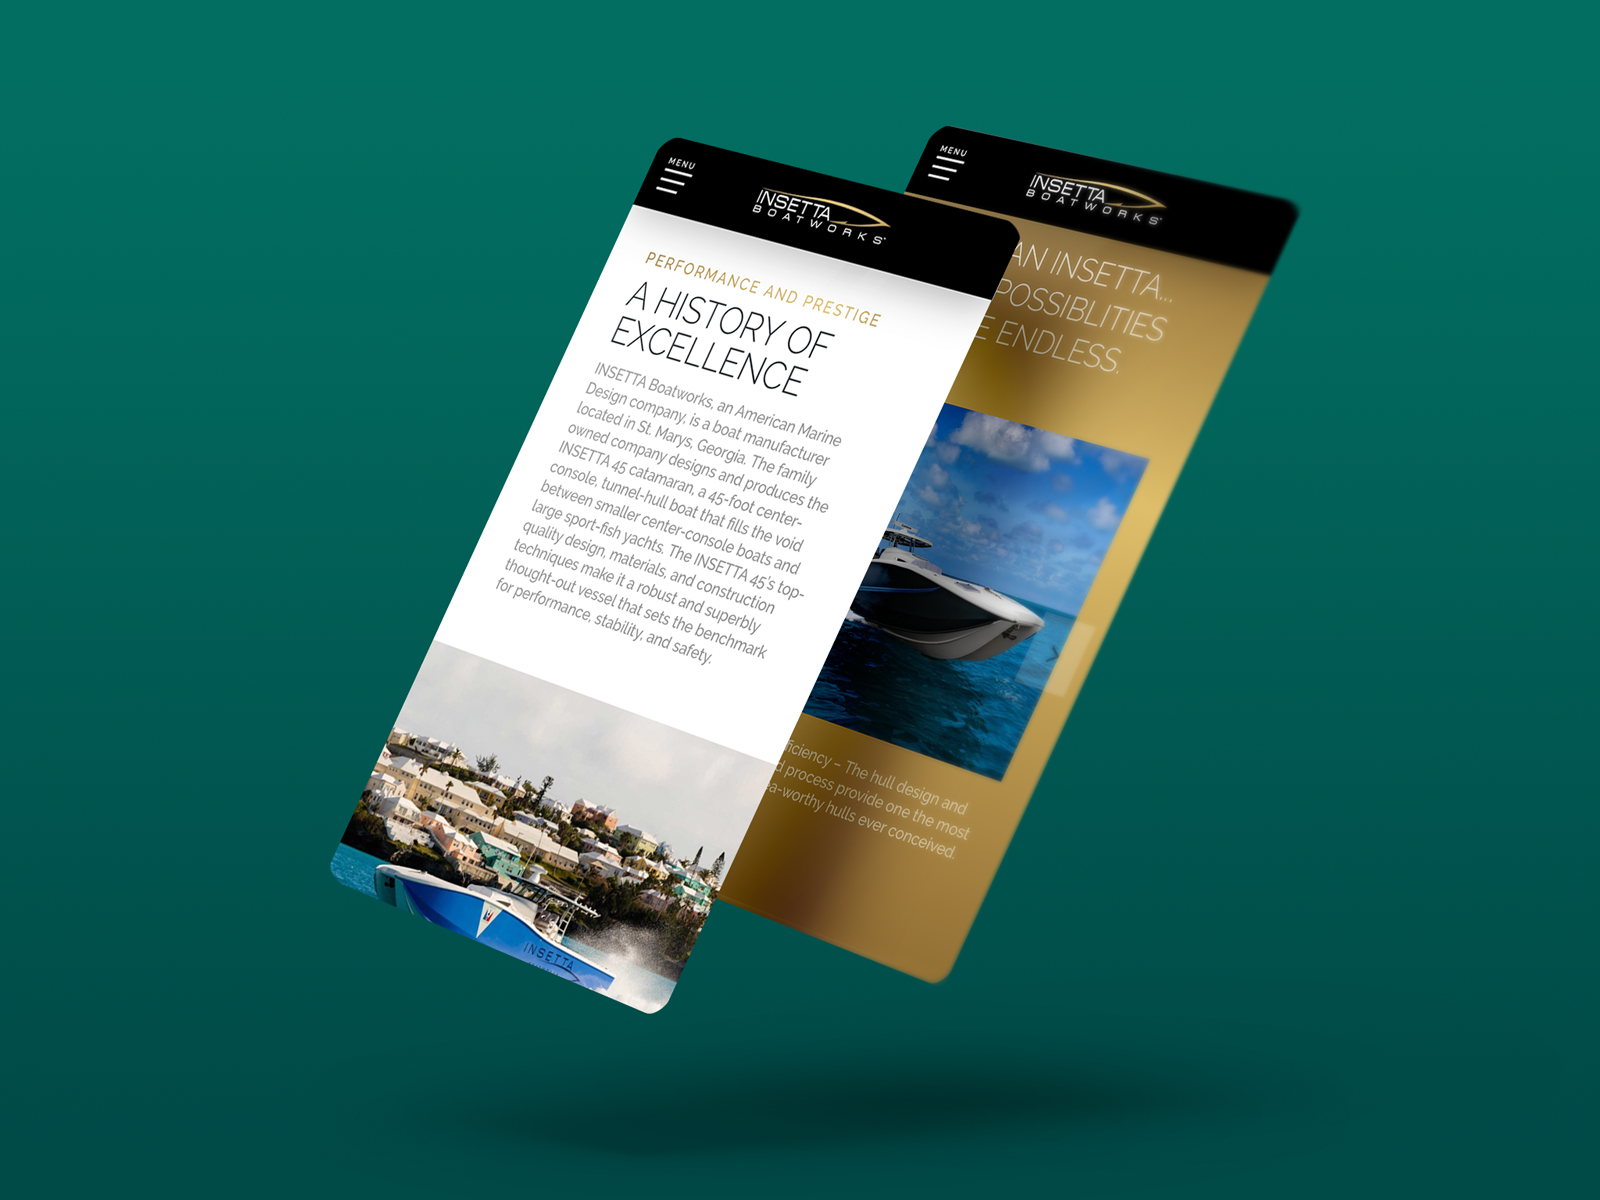 insetta website designs mobile